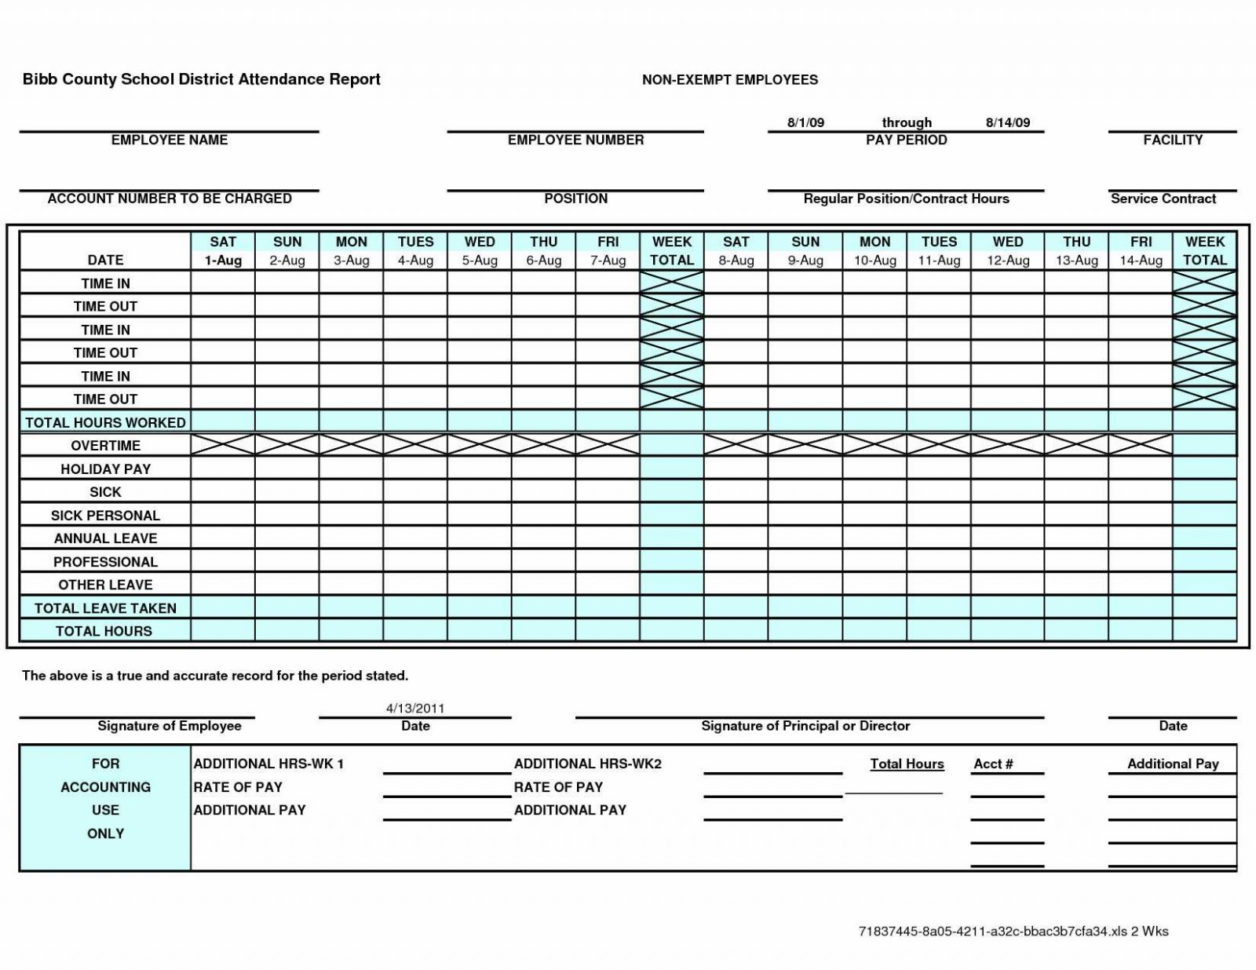 Example Of Payroll Spreadsheet Template Excel | Pianotreasure Intended For Payroll Spreadsheet